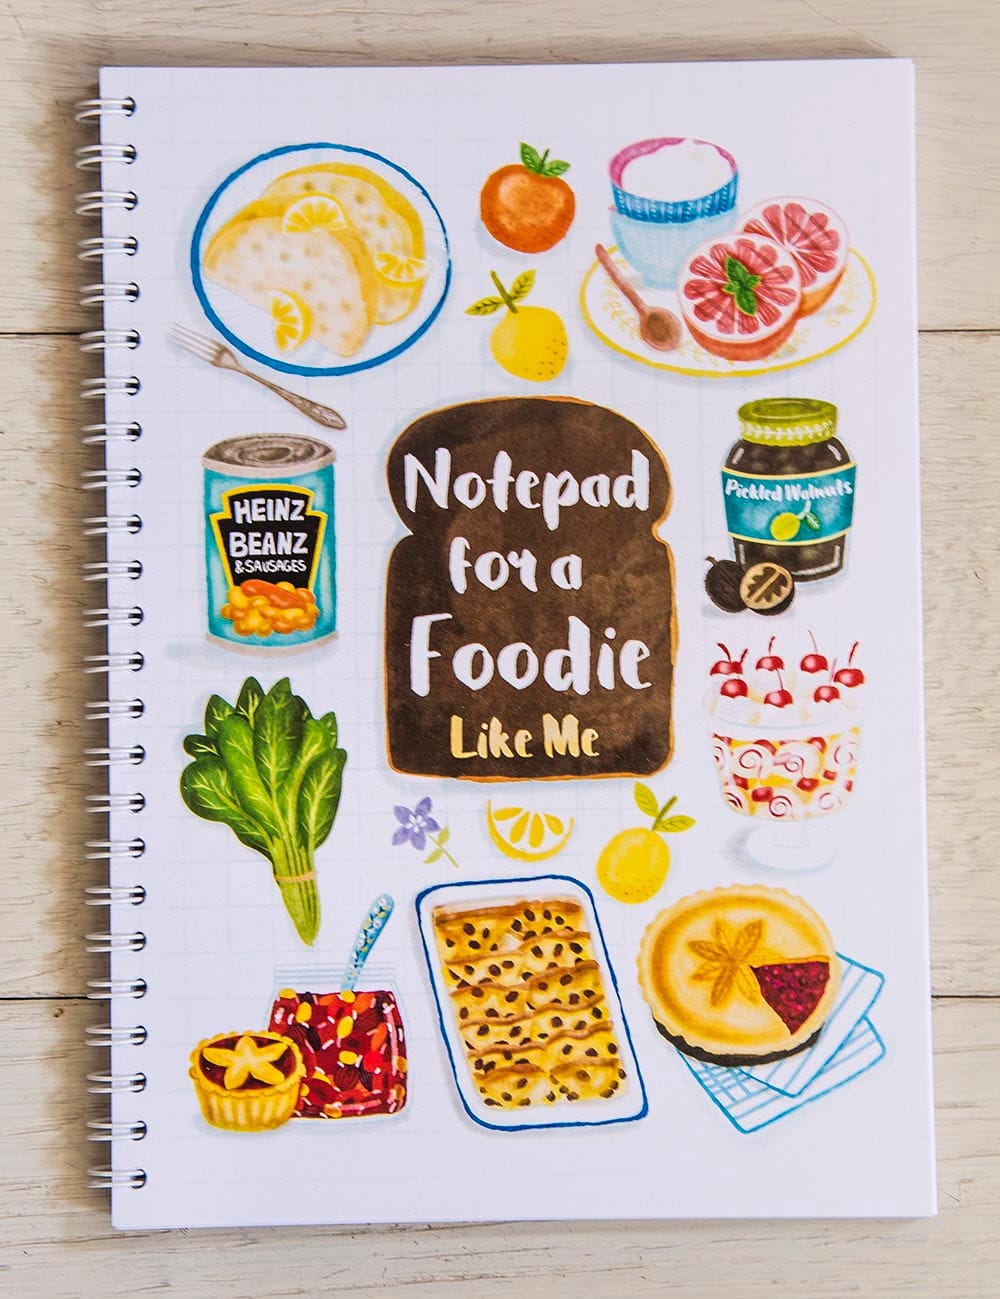 Personalized notebook notepad cover notebook food lovers pad personalized notebook notepad cover notebook food lovers pad note pad forumfinder Image collections